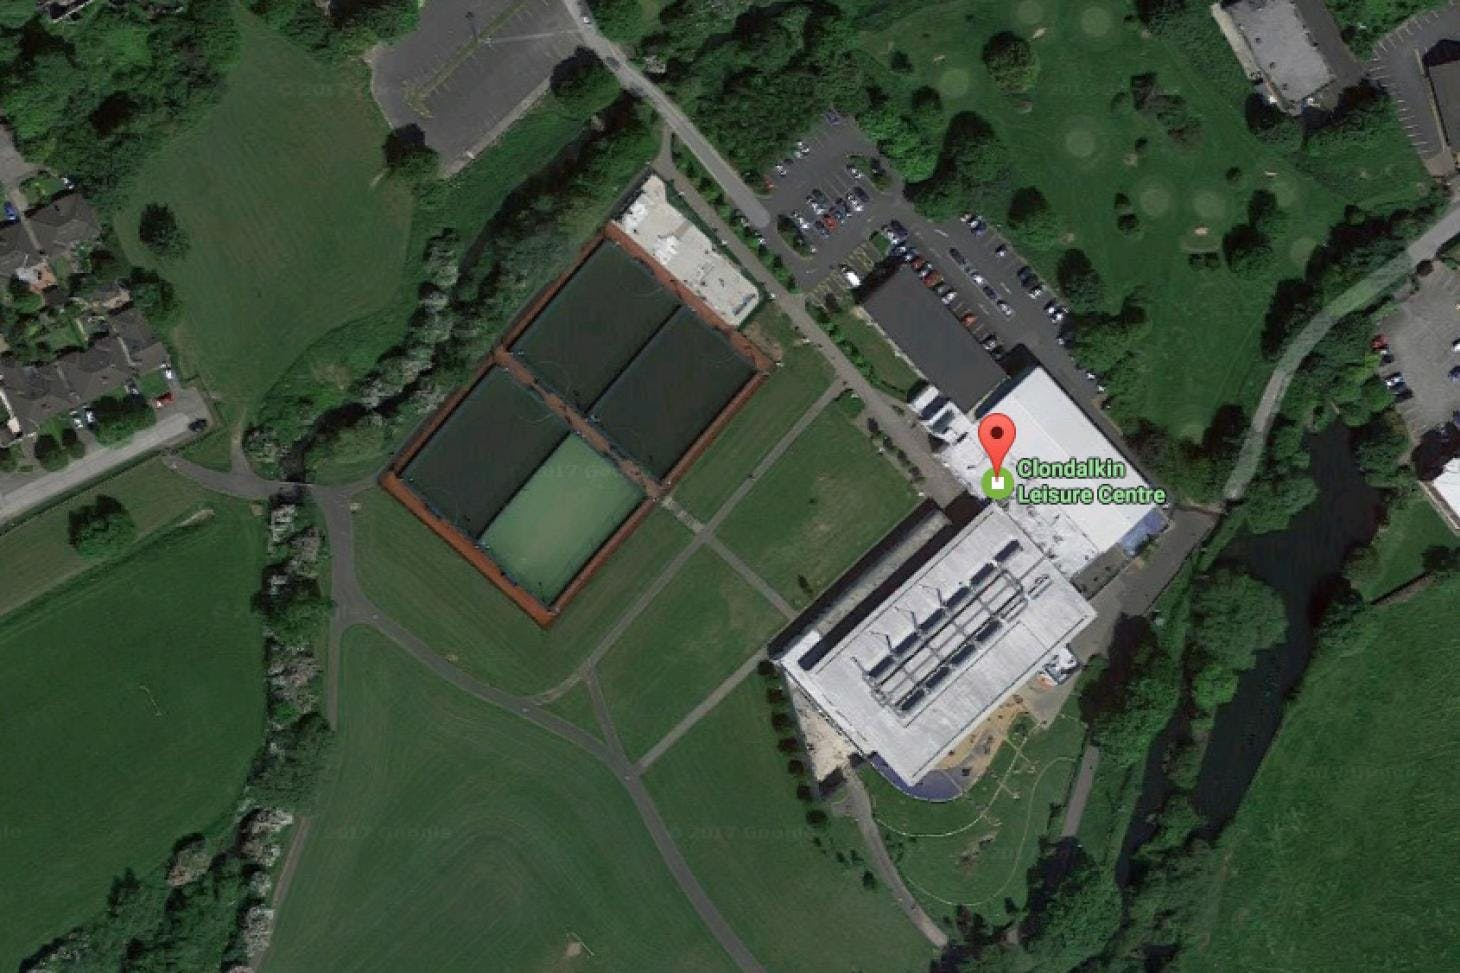 Clondalkin Leisure Centre 5 a side | 3G Astroturf football pitch